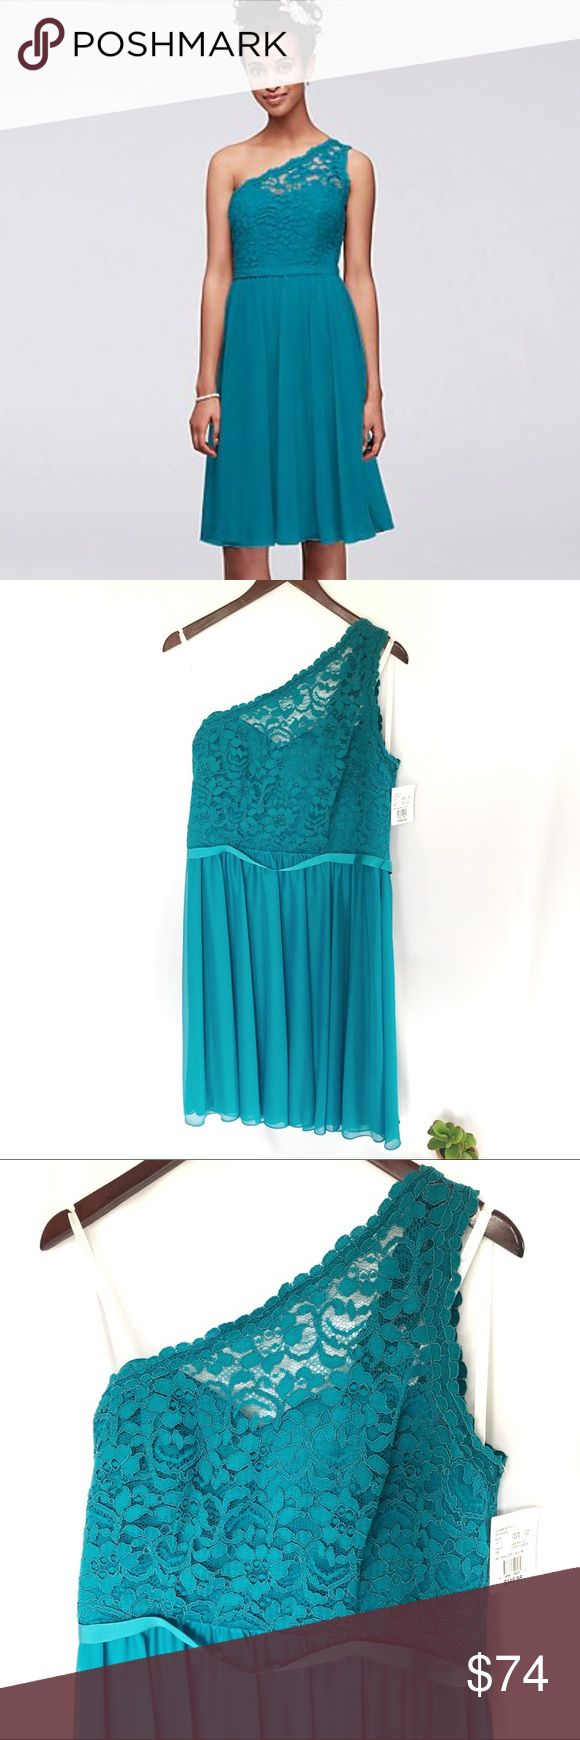 David's Bridal One Shoulder Lace Corded Dress Brand new, never worn.  Oasis color (green or emerald look) for bridesmaid, cocktail party, holiday pa...